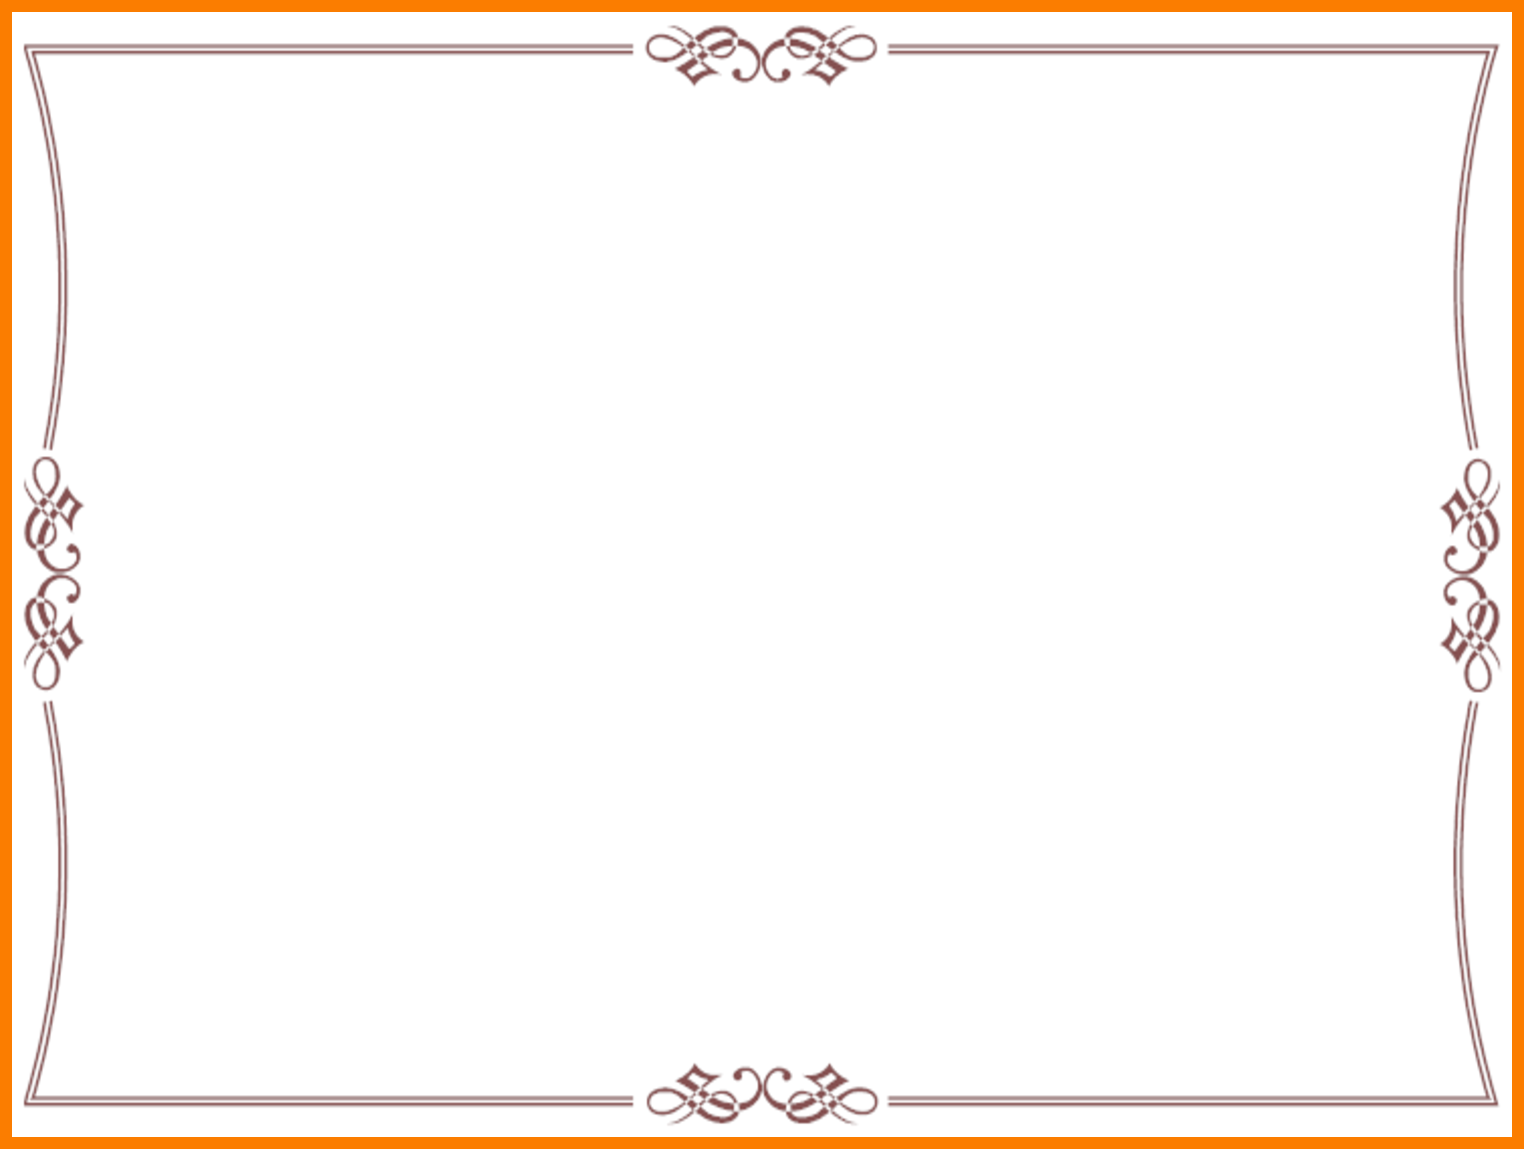 certificate border design Expin.franklinfire.co